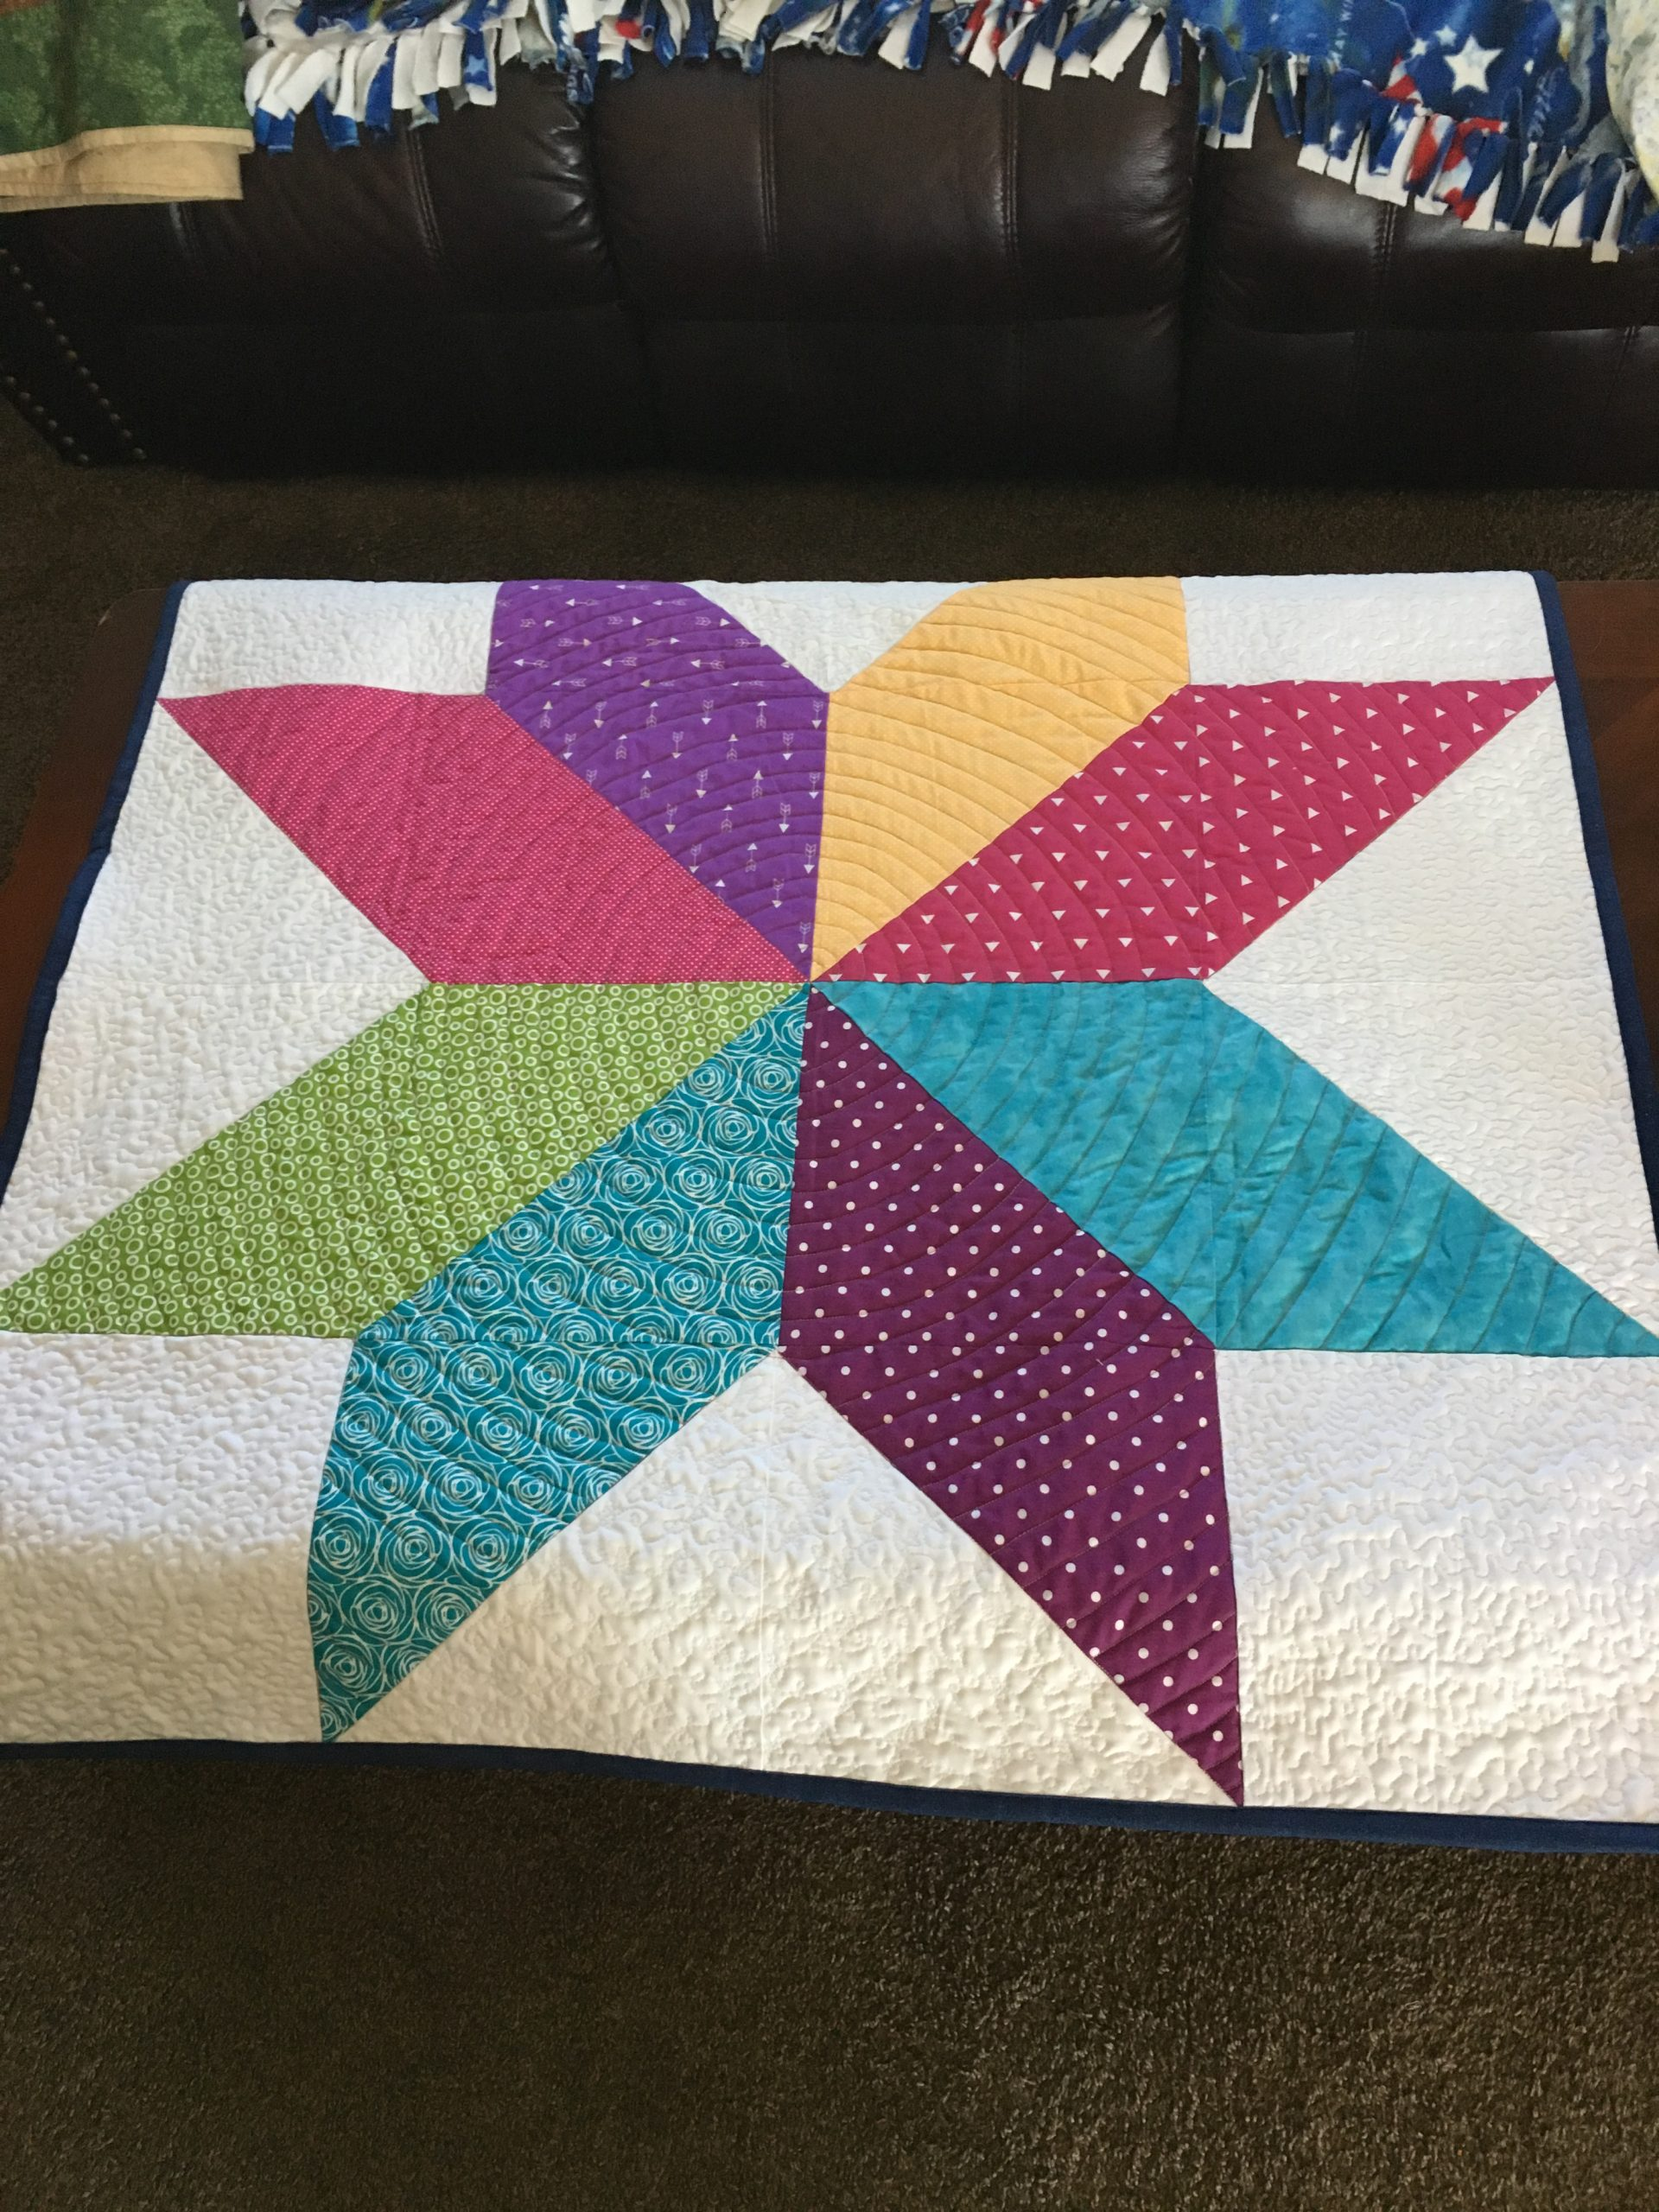 A Little More About My Quilting Journey